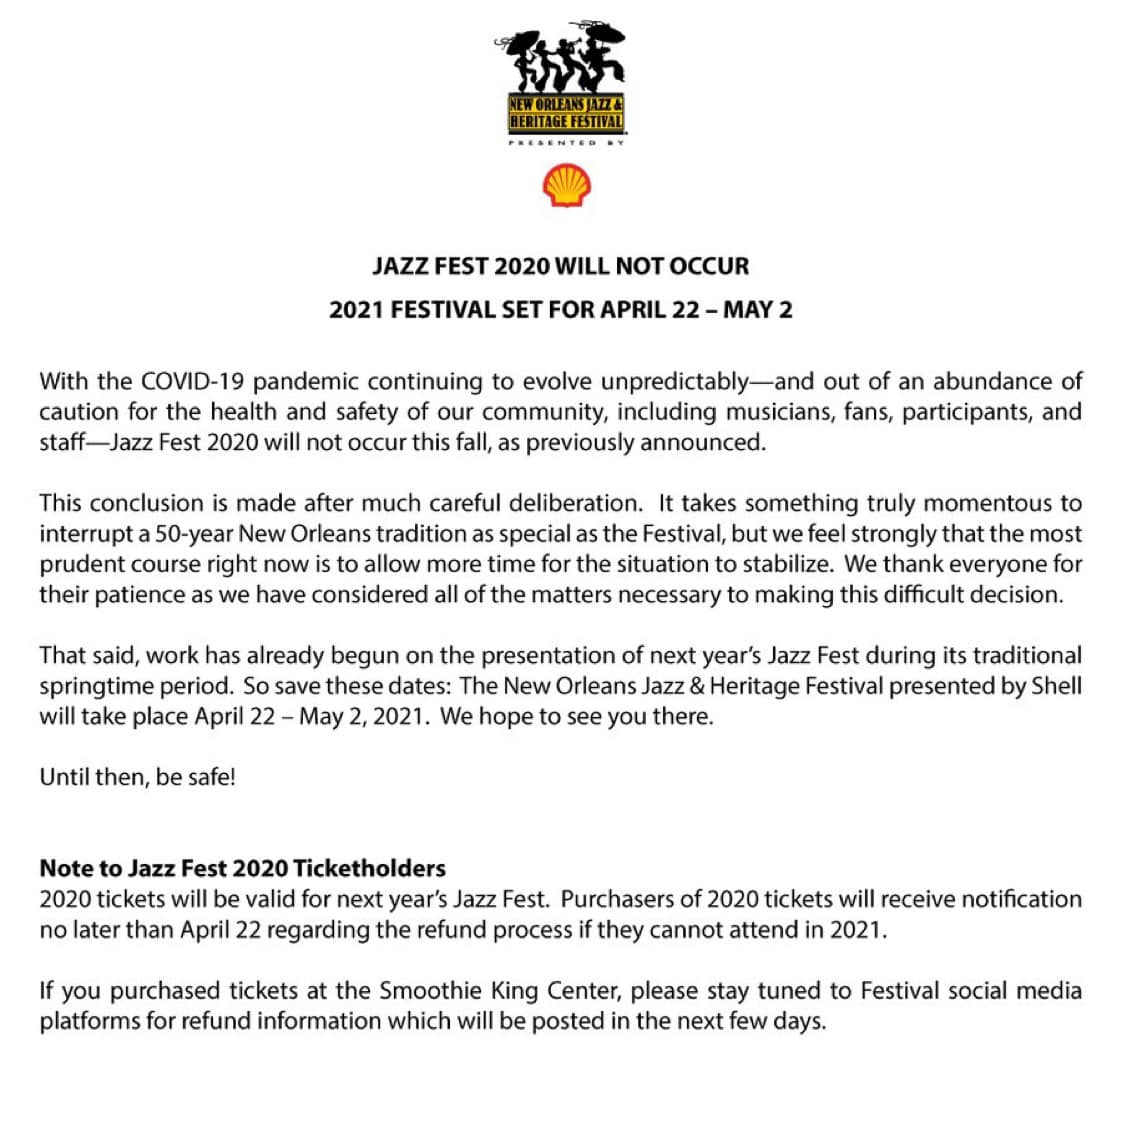 Letter cancelling 2020 Jazz Fest